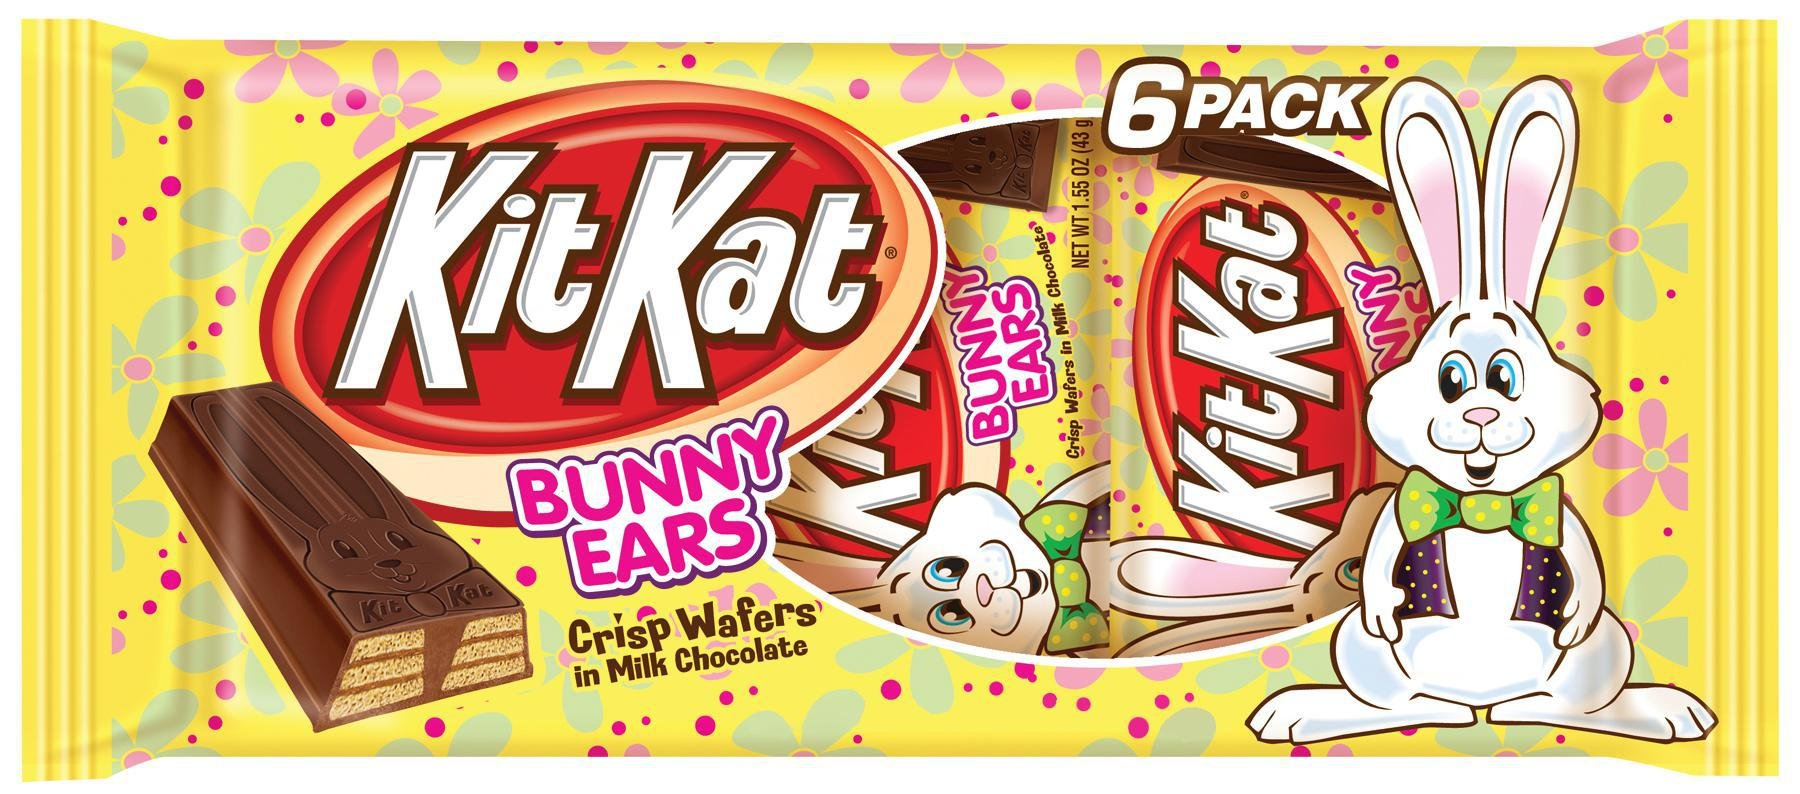 Kit Kat Easter Bunny Ear Bars, Crisp Wafers in Milk Chocolate, 1.55 oz. Bars, 6-Count Packages (Pack of 4)